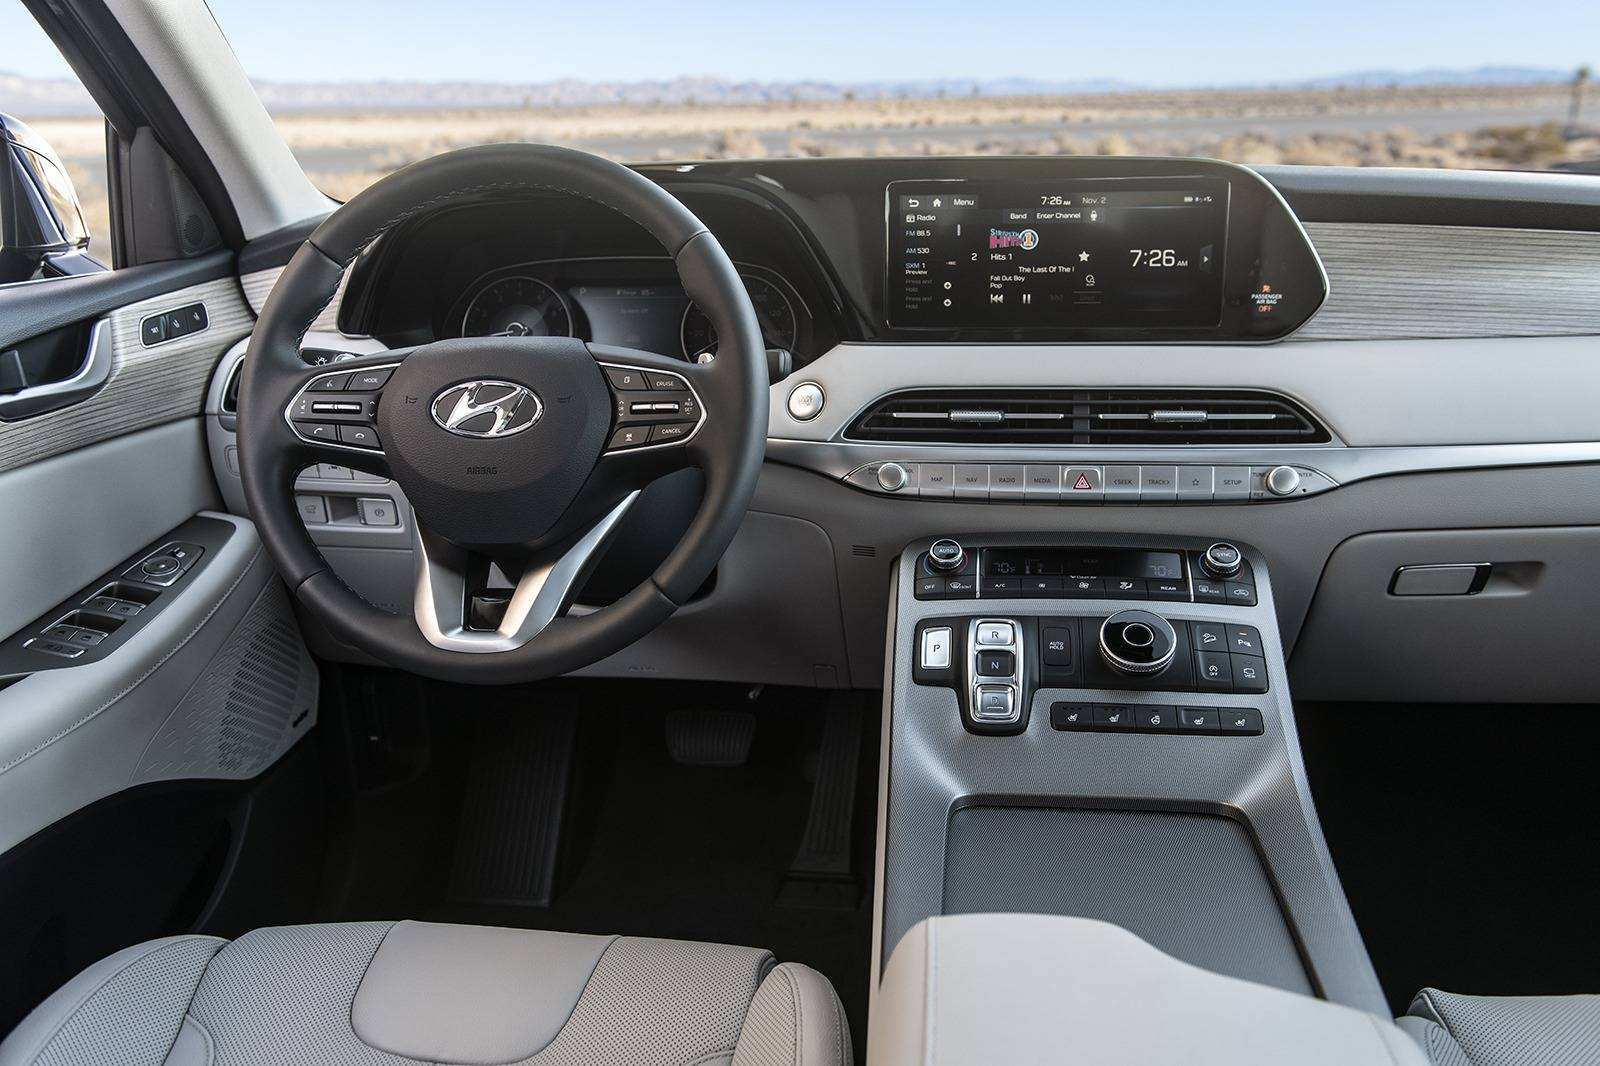 84 Great Hyundai Palisade 2020 Price In Pakistan Speed Test with Hyundai Palisade 2020 Price In Pakistan